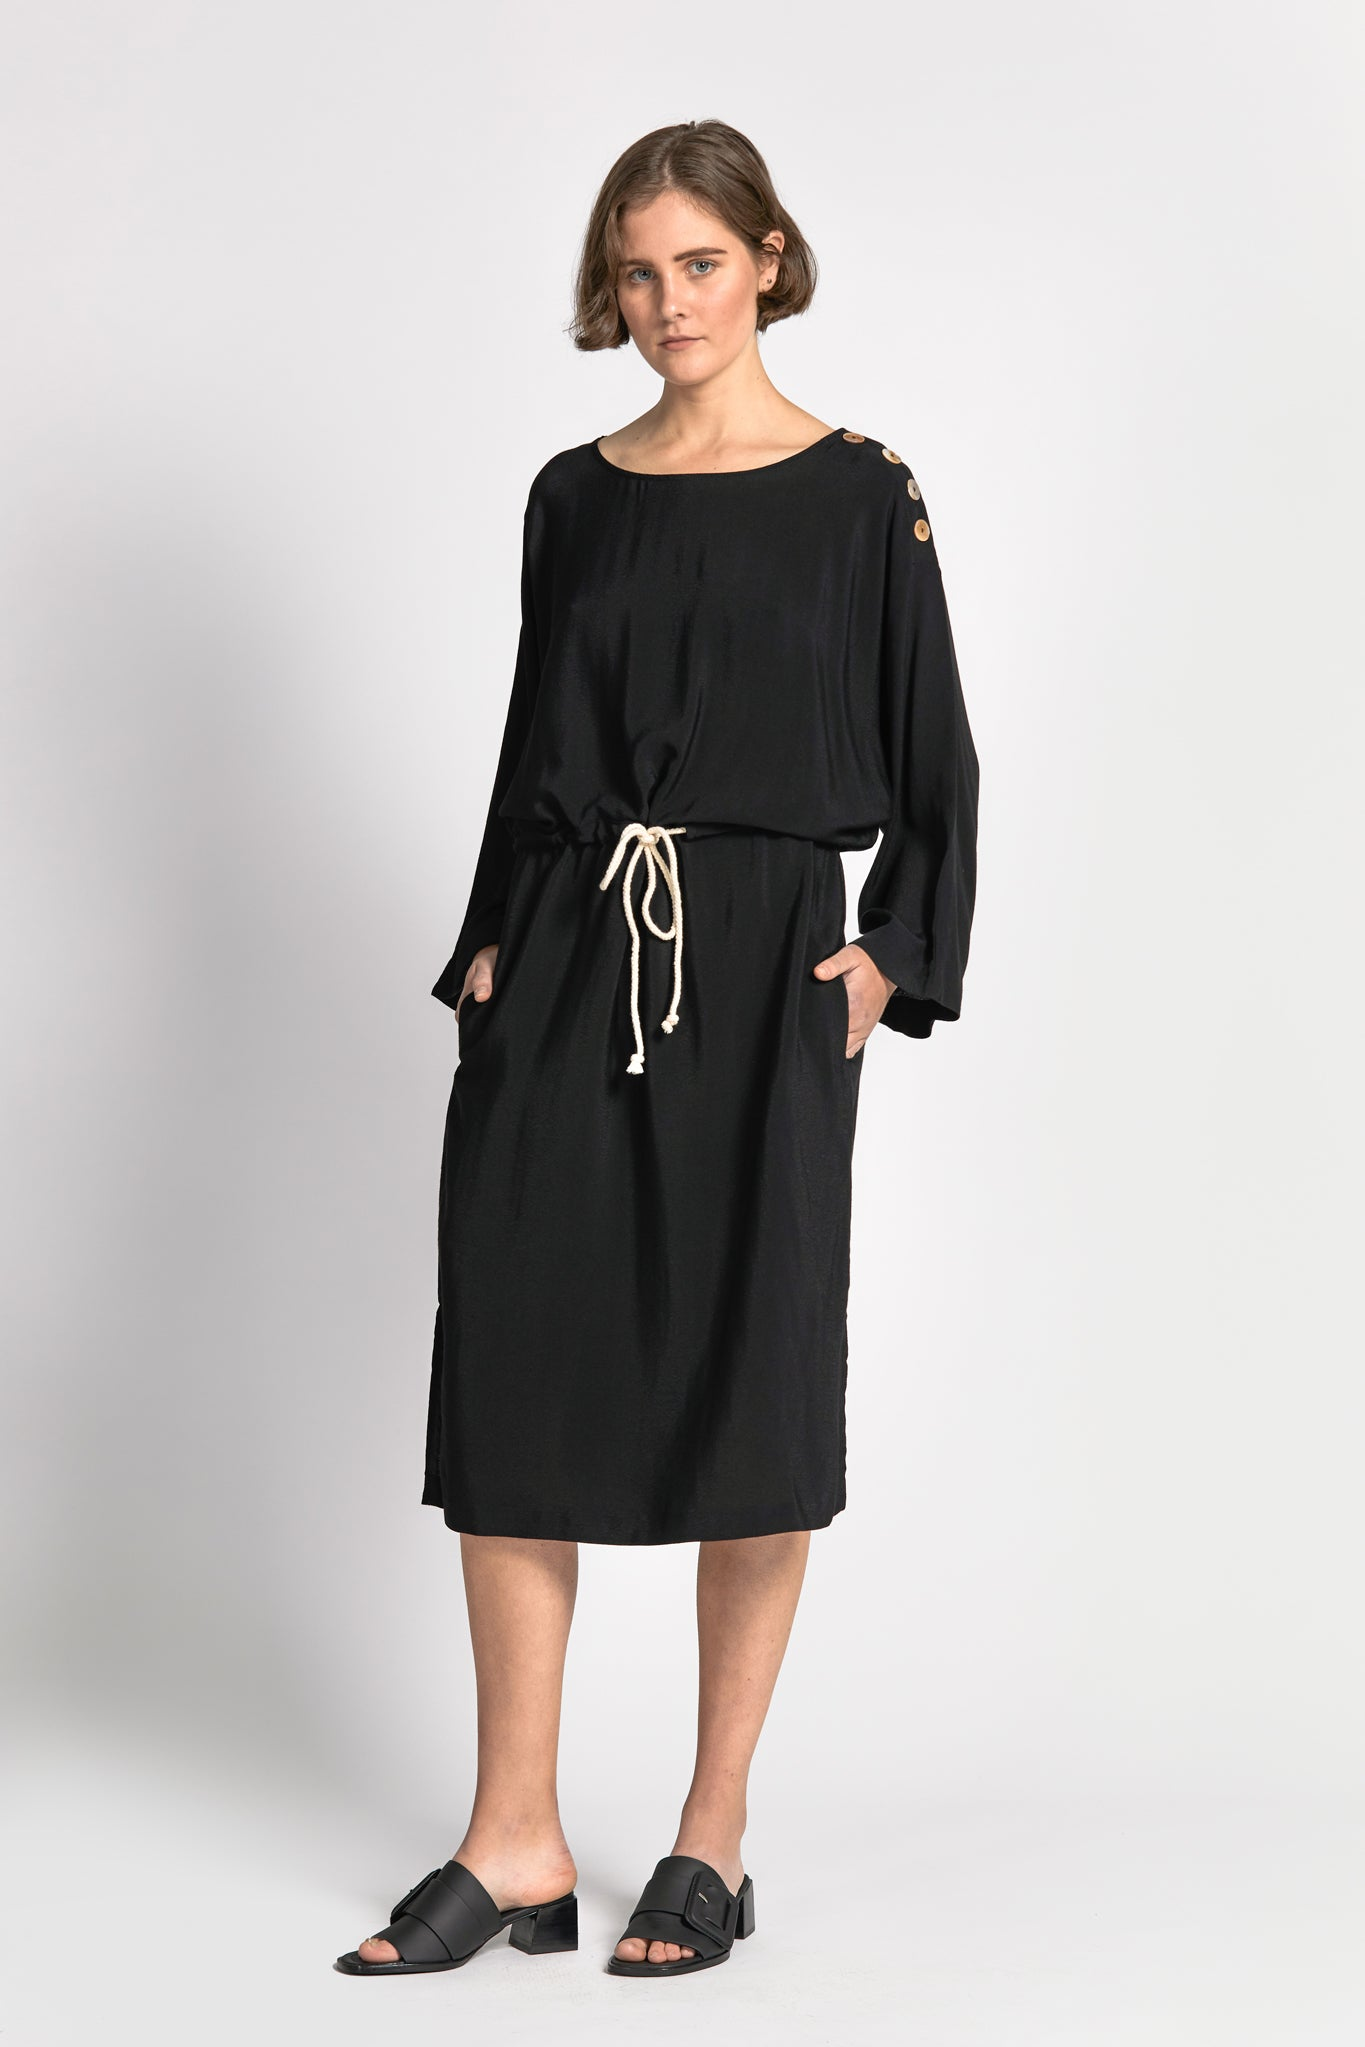 hau dress black